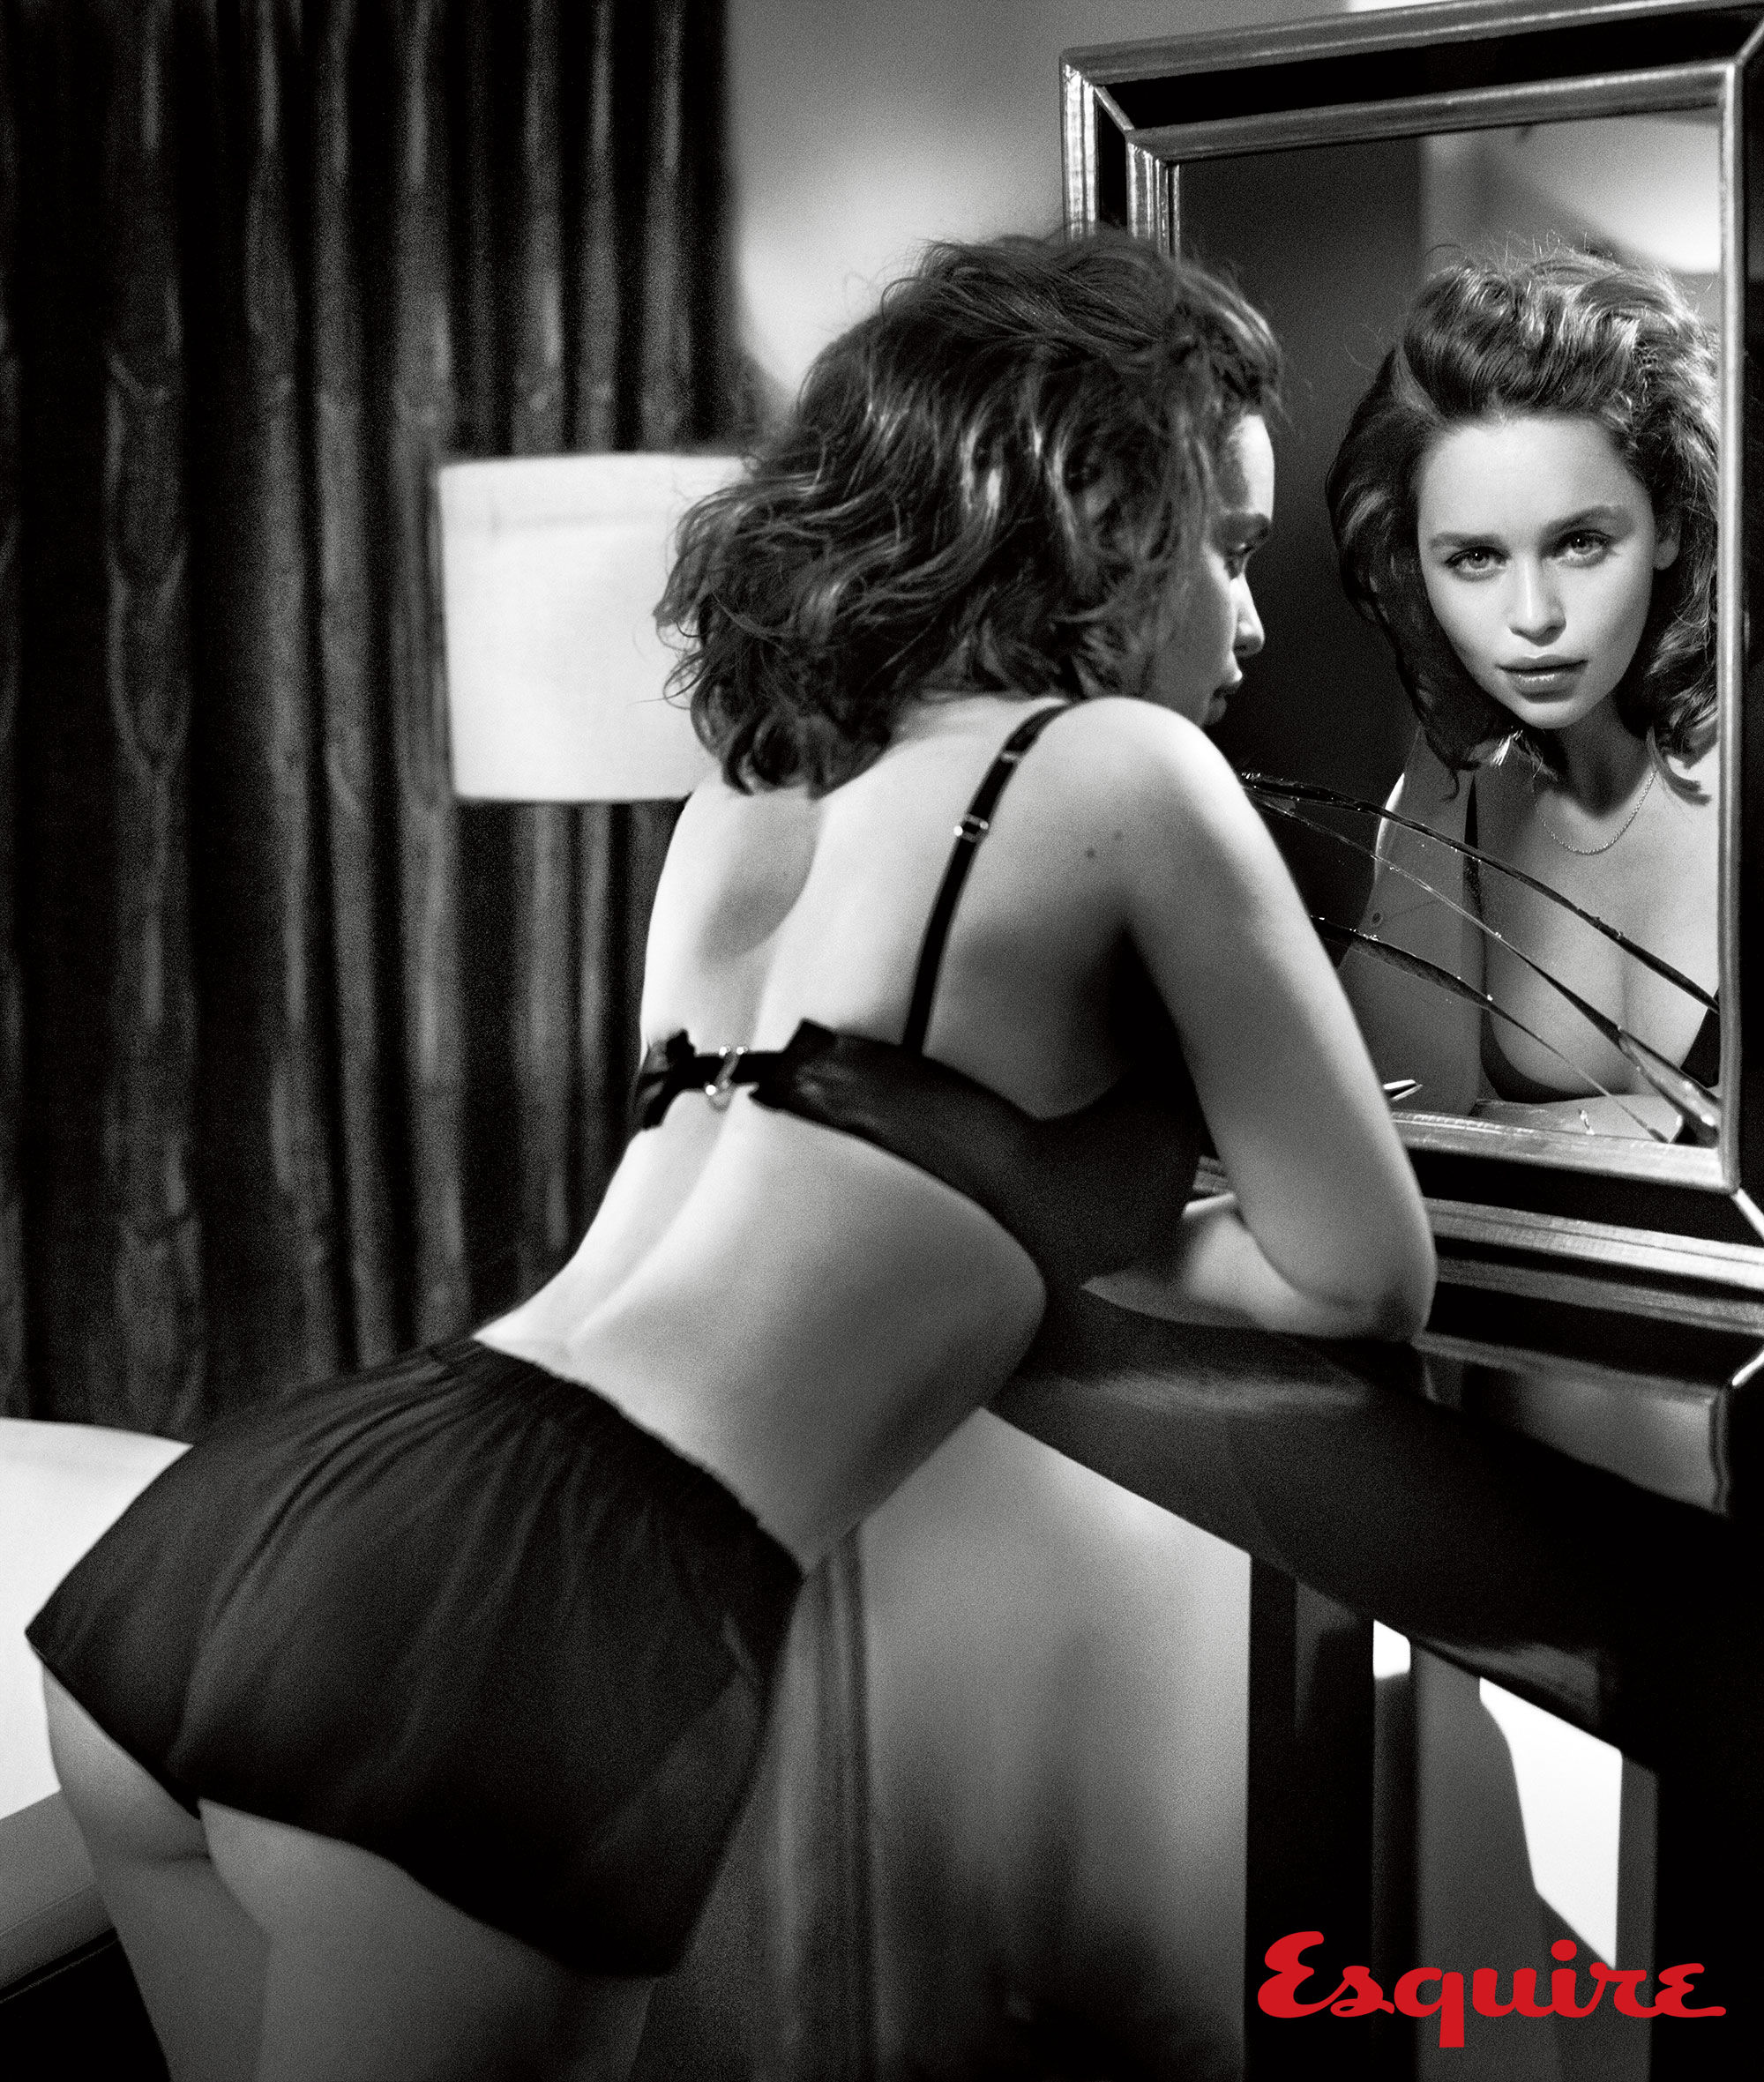 HIGH RES Esquire emilia-clarke-sexiest-woman-alive-2015 10